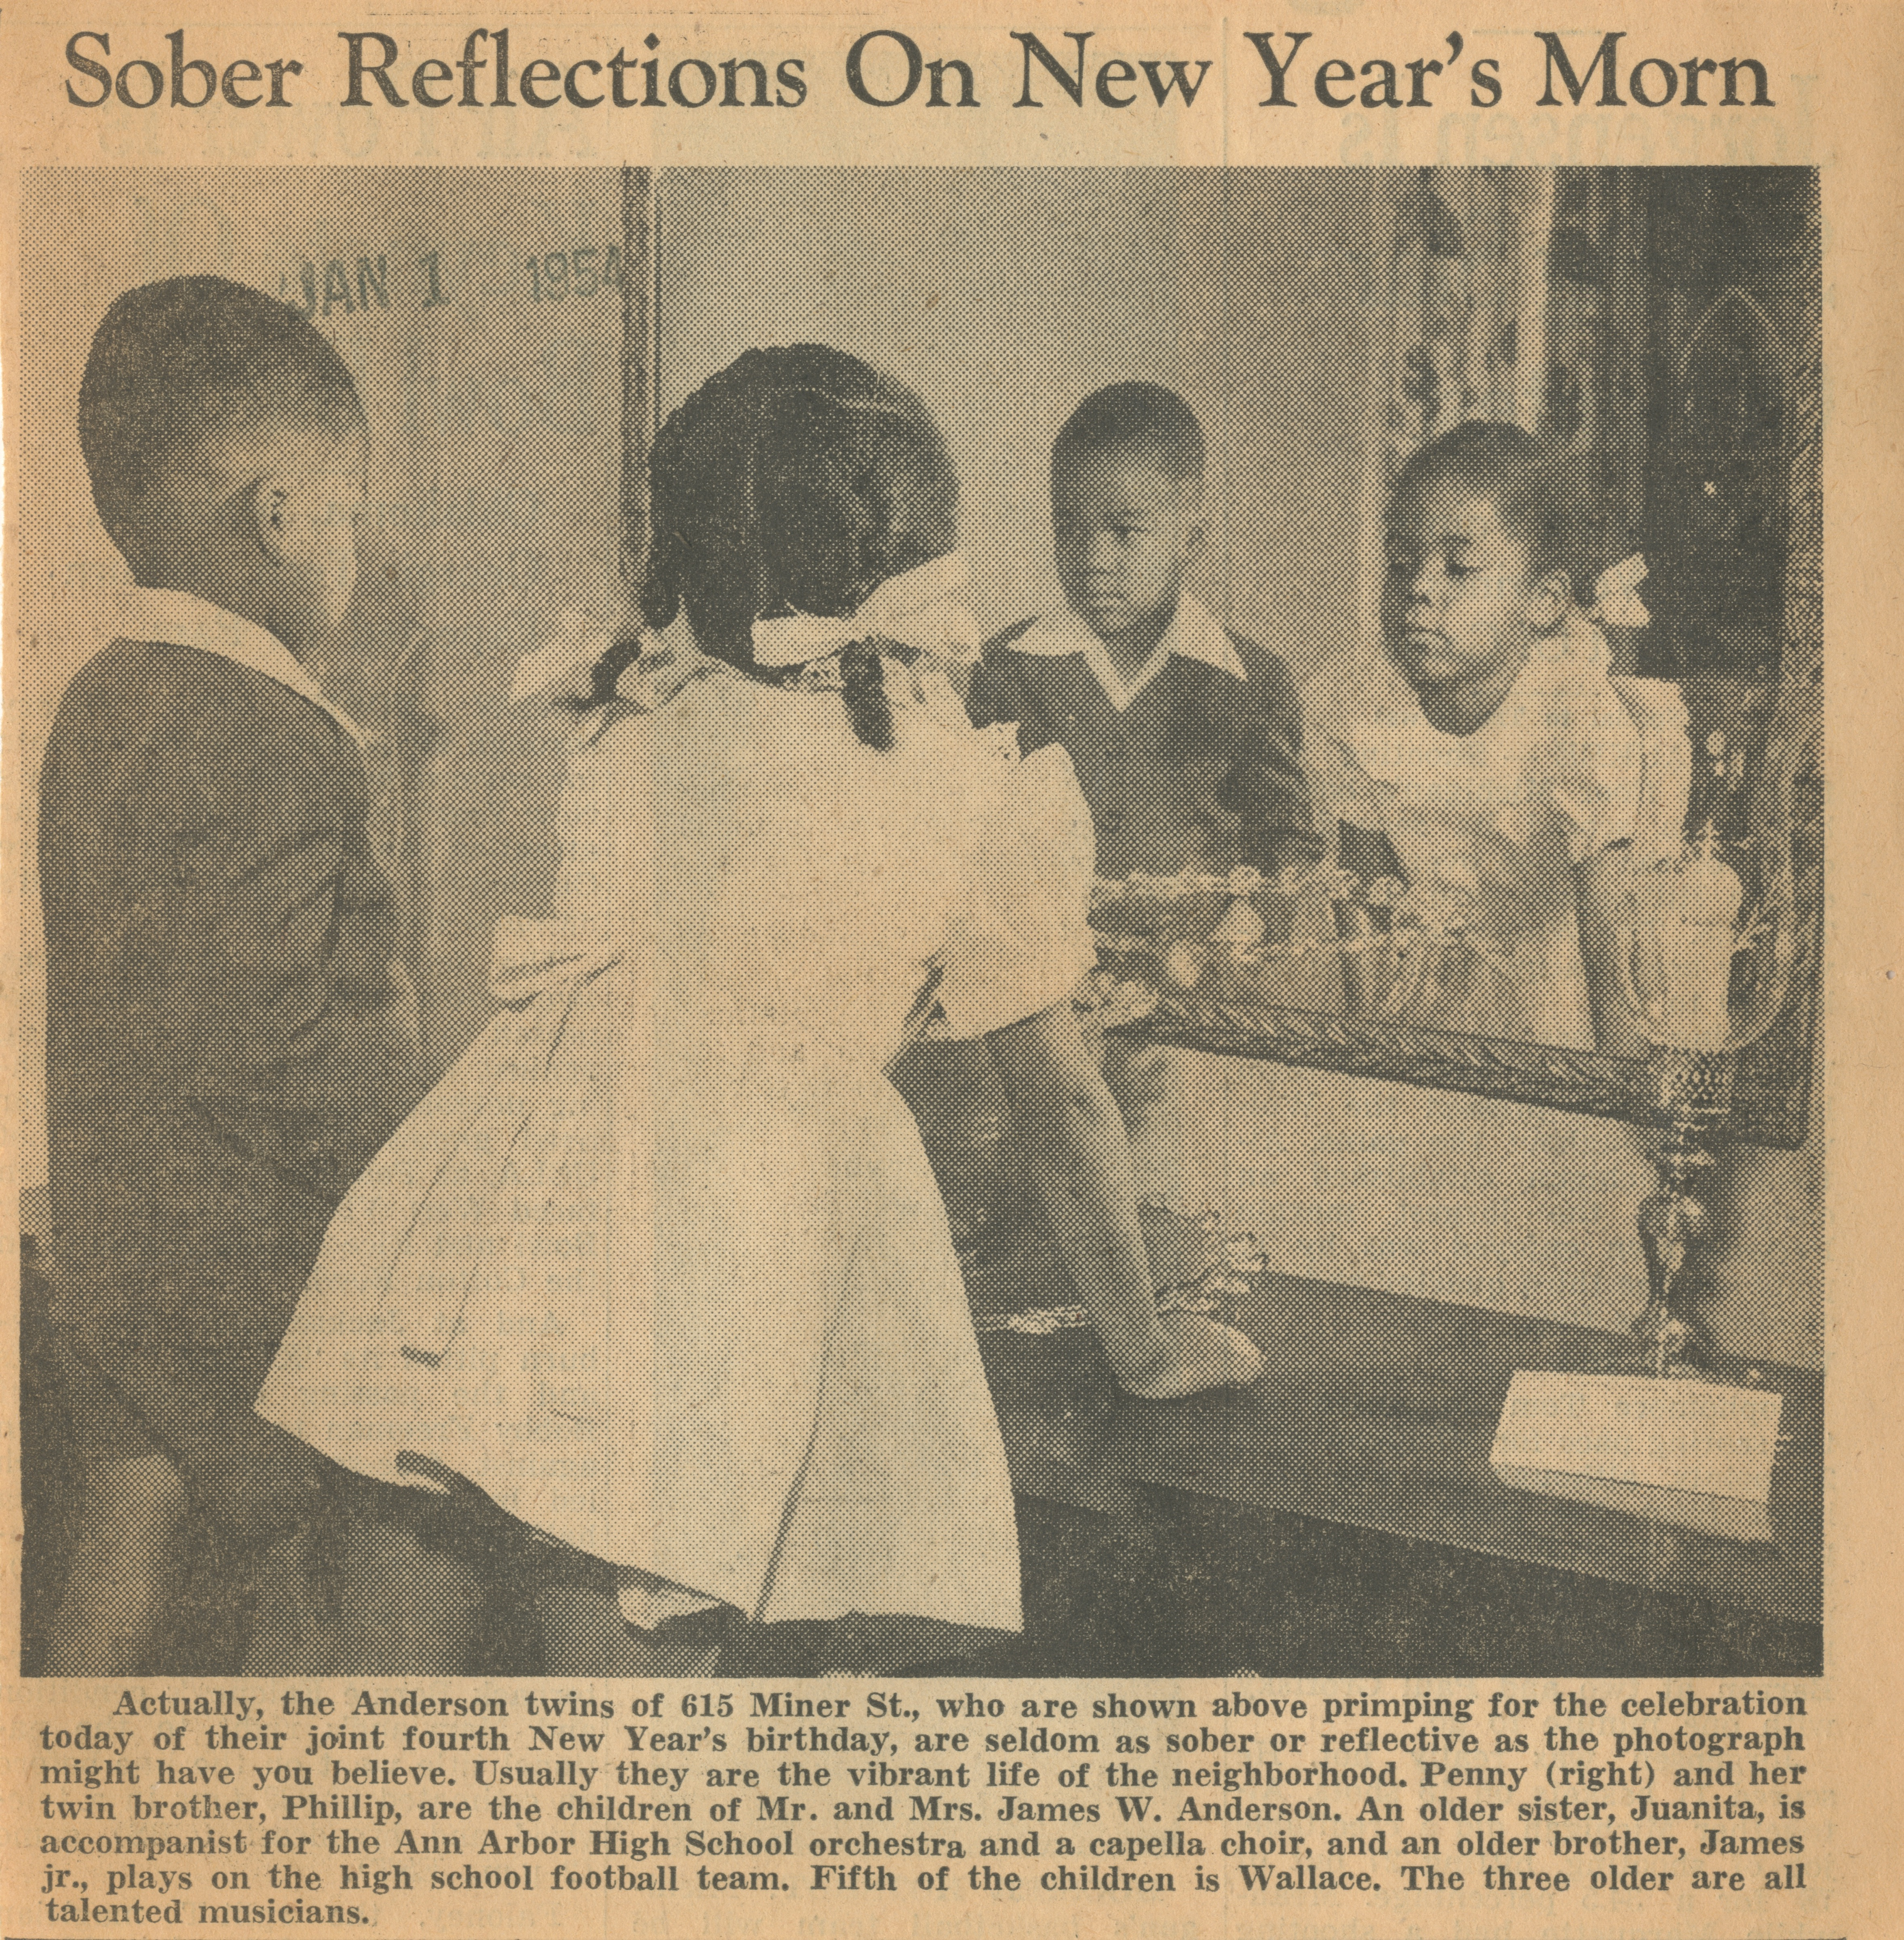 Sober Reflections On New Year's Morn image